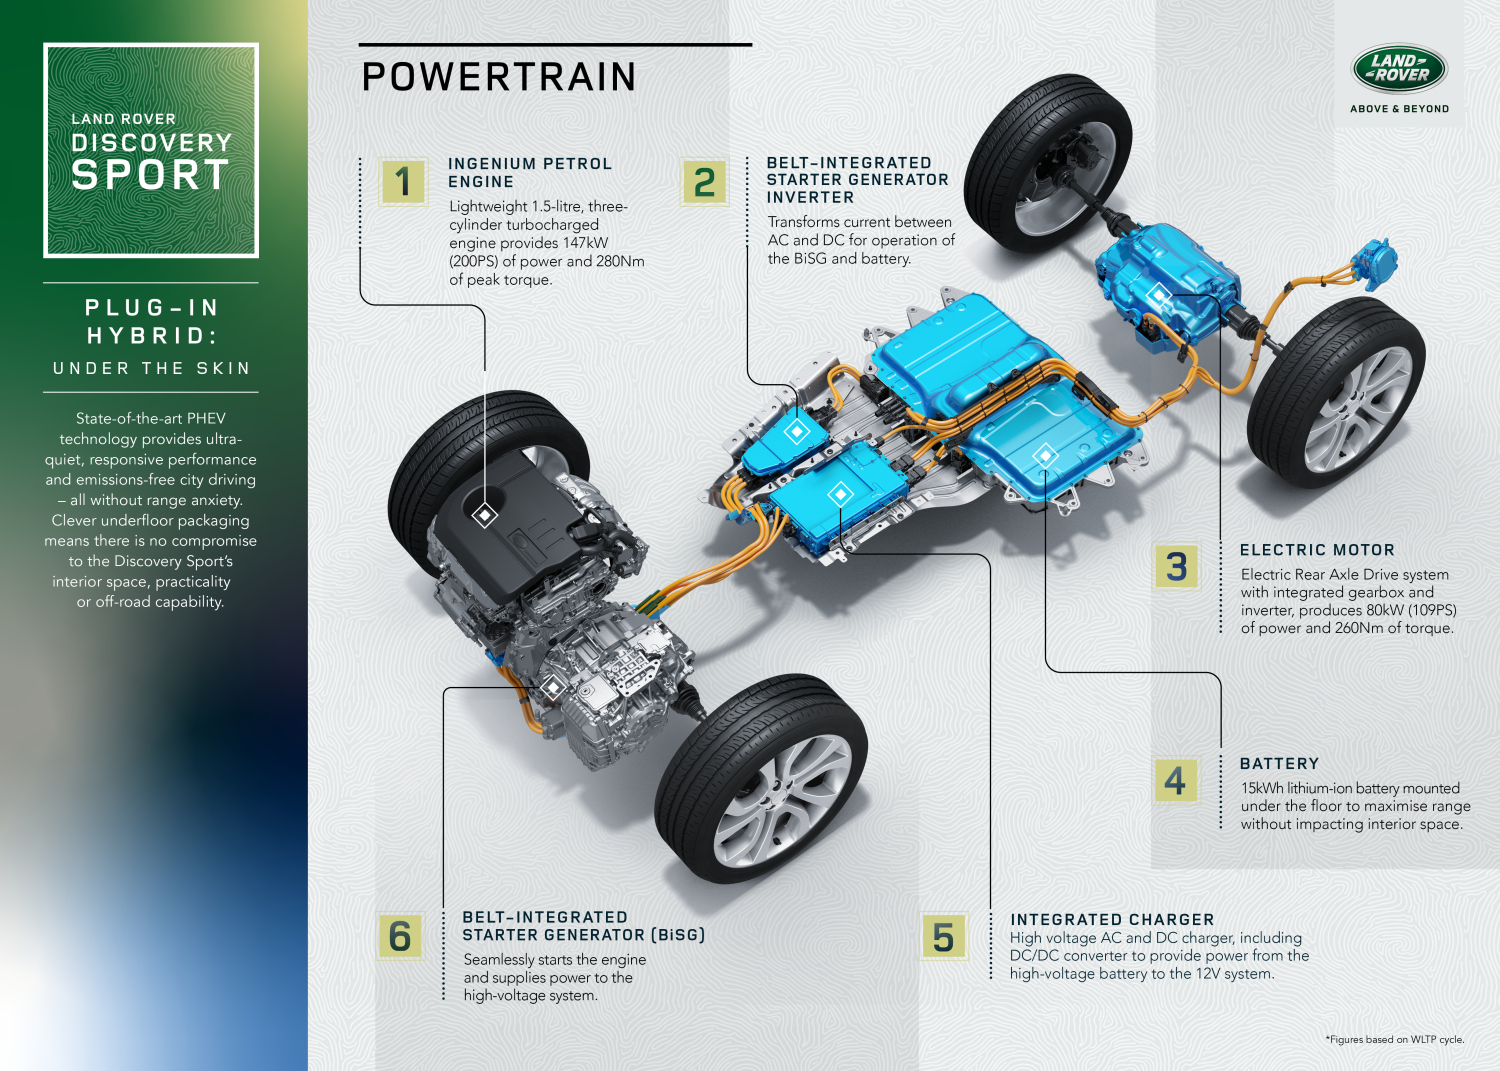 LAND ROVER DISCOVERY SPORT PLUG-IN HYBRID INFOGRAFICHE